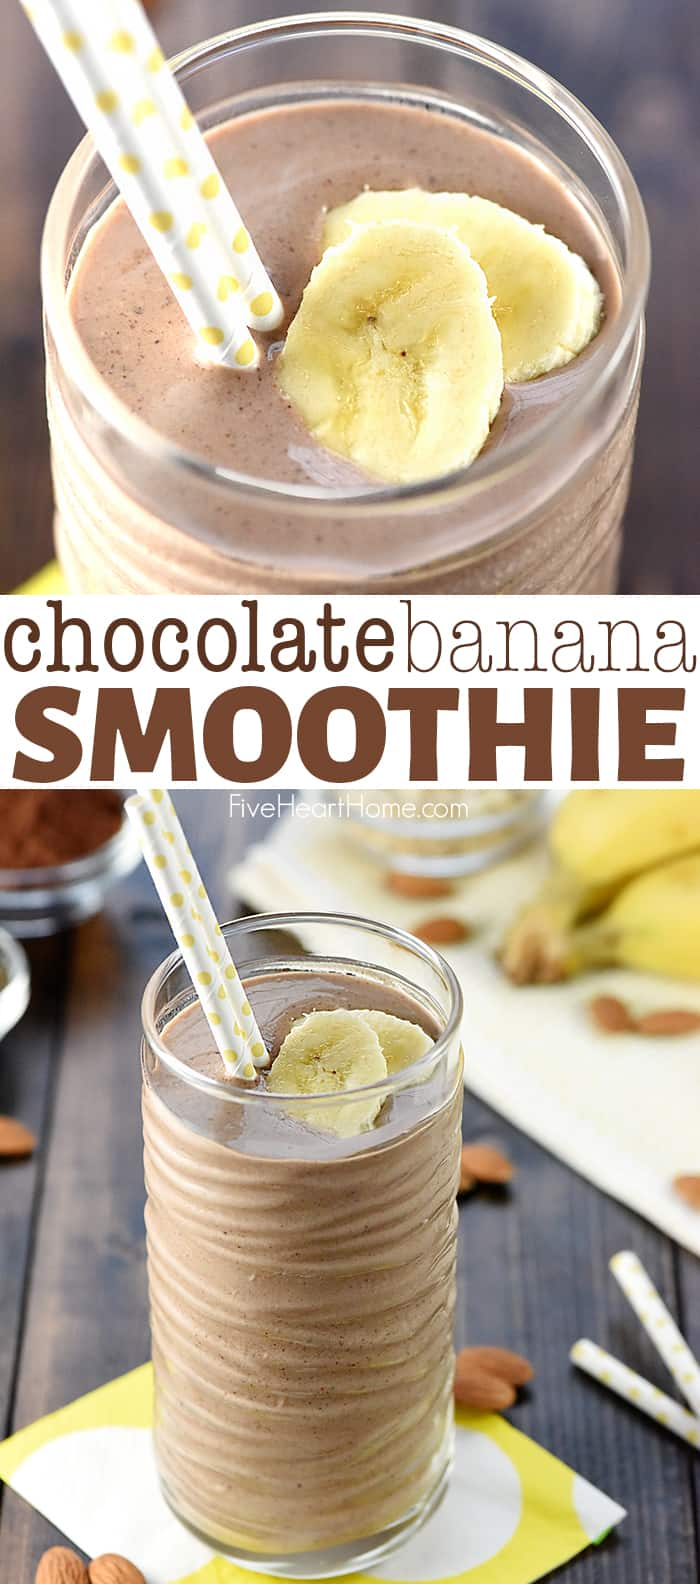 Chocolate Banana Smoothie ~ a healthy, filling, decadent breakfast or snack, loaded with bananas, almond milk, almond butter, Greek yogurt, oats, chia seeds, and cocoa powder for a boost of protein, vitamins, calcium, and fiber! | FiveHeartHome.com